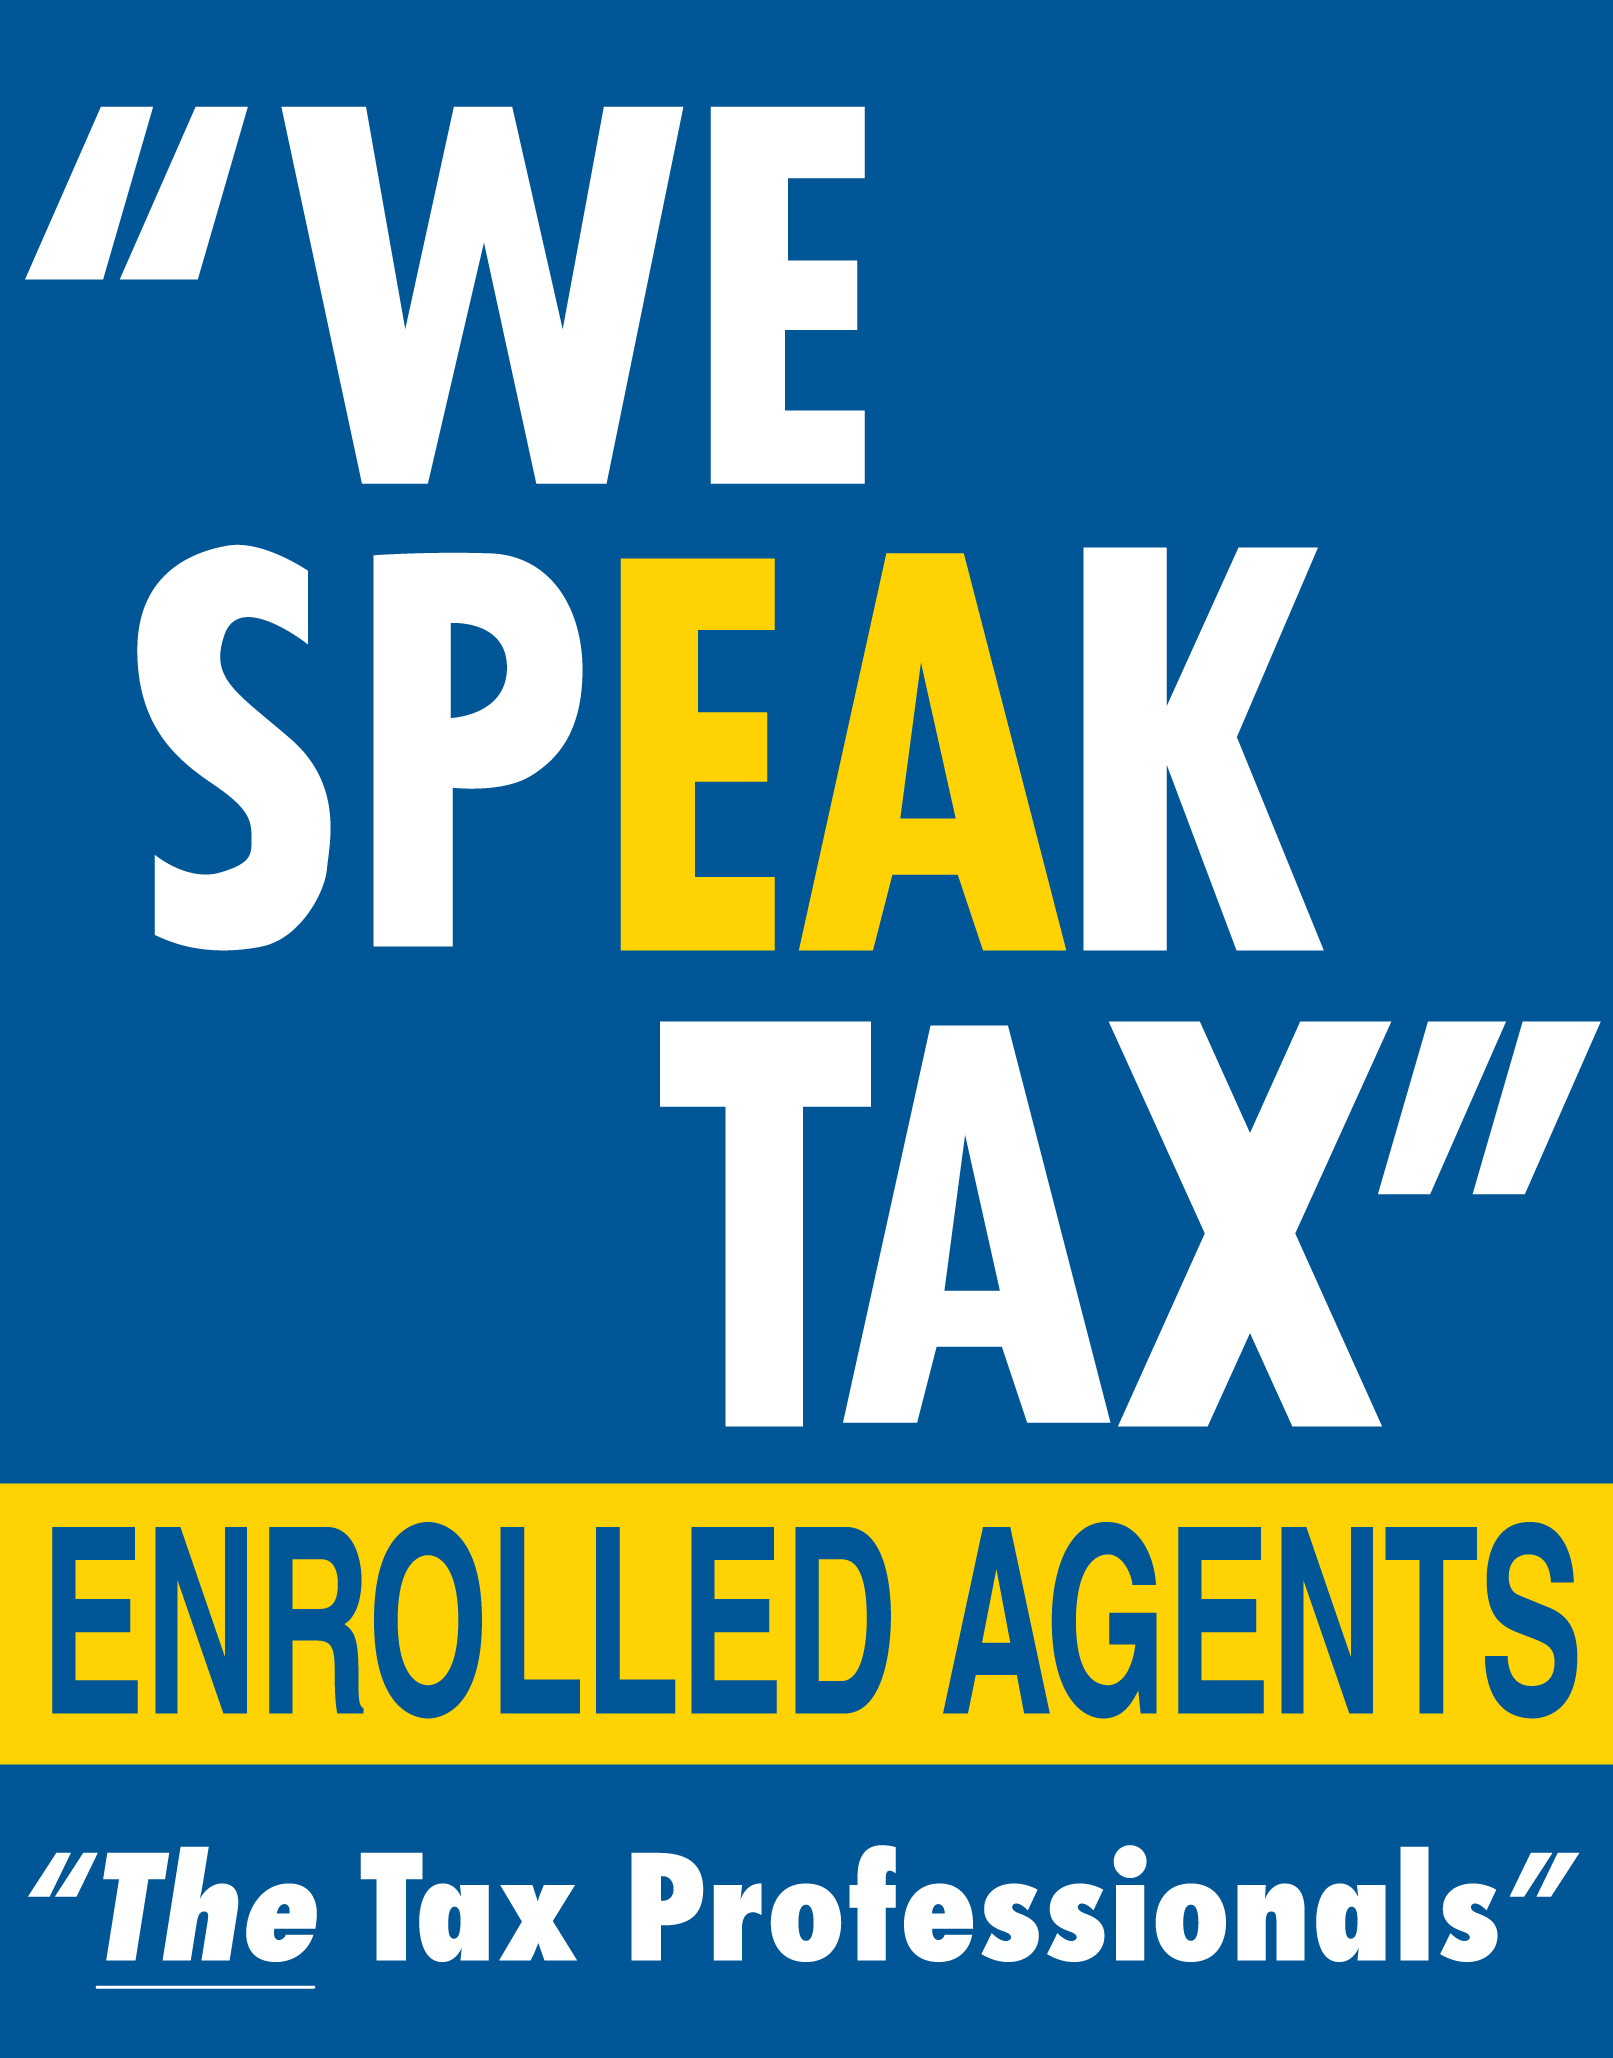 eftps you are not enrolled for this tax form